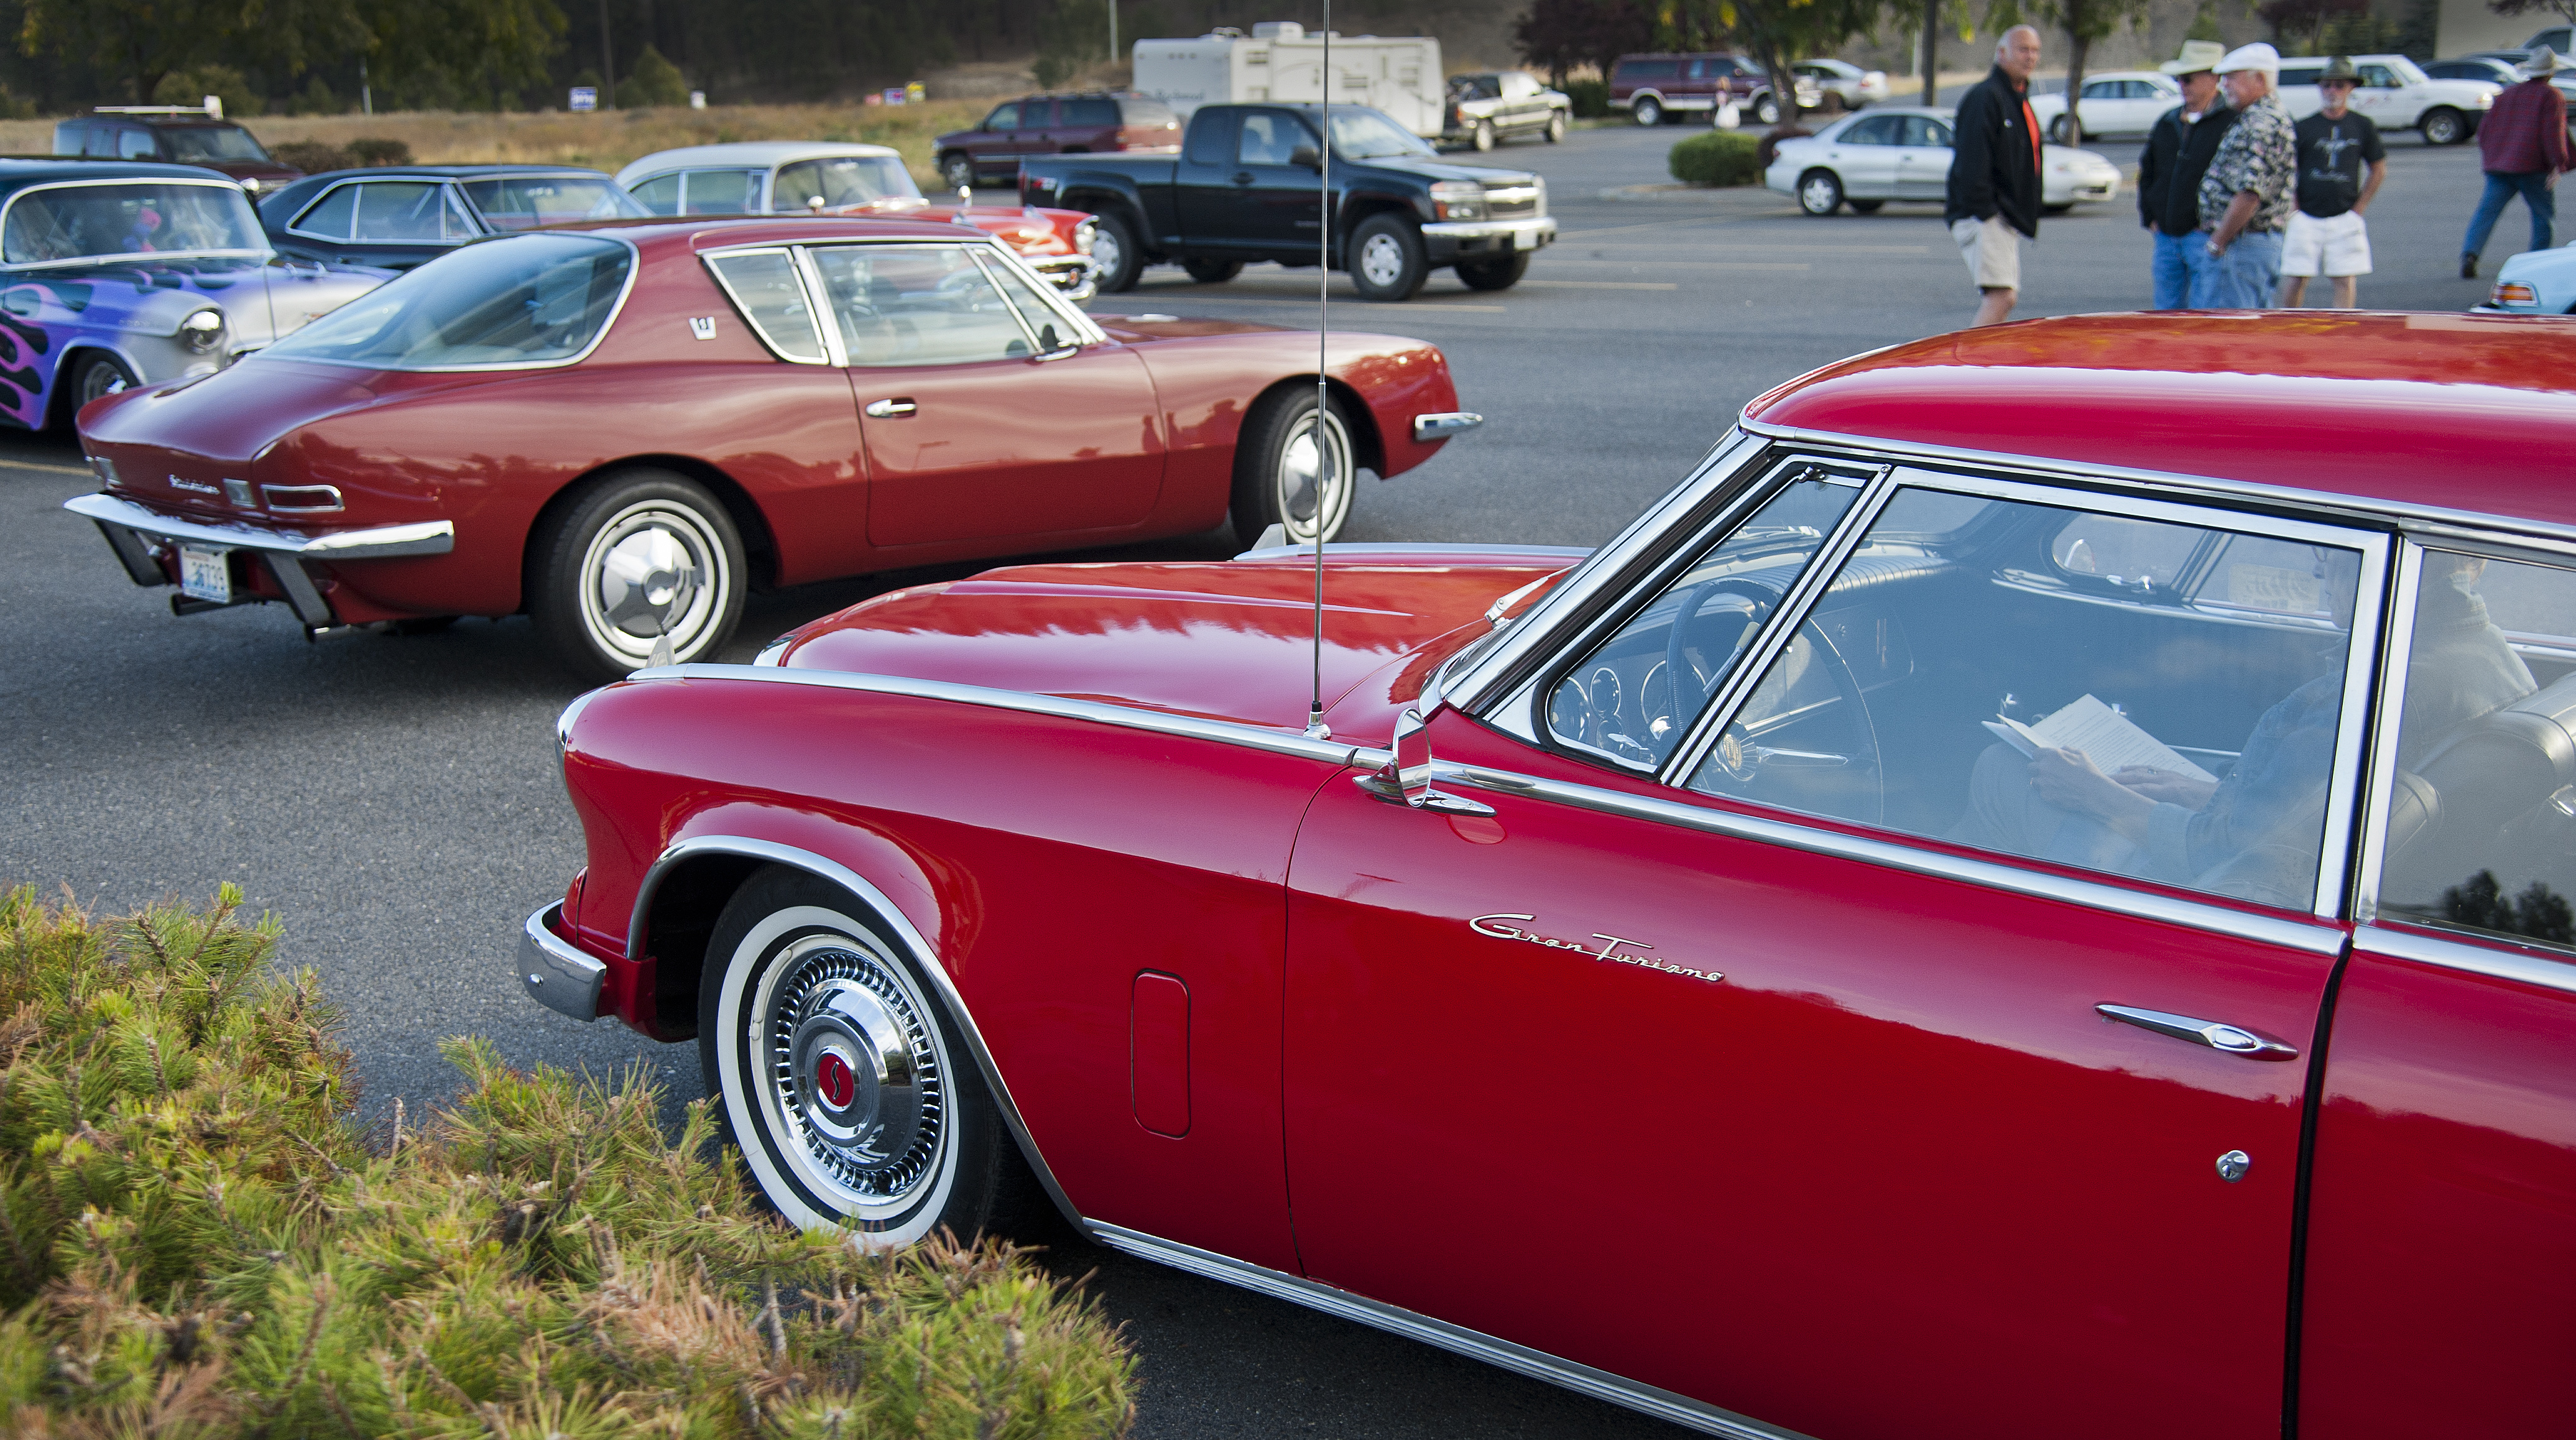 Drive Your Studebaker Day draws classic cars, young-at-heart lovers ...